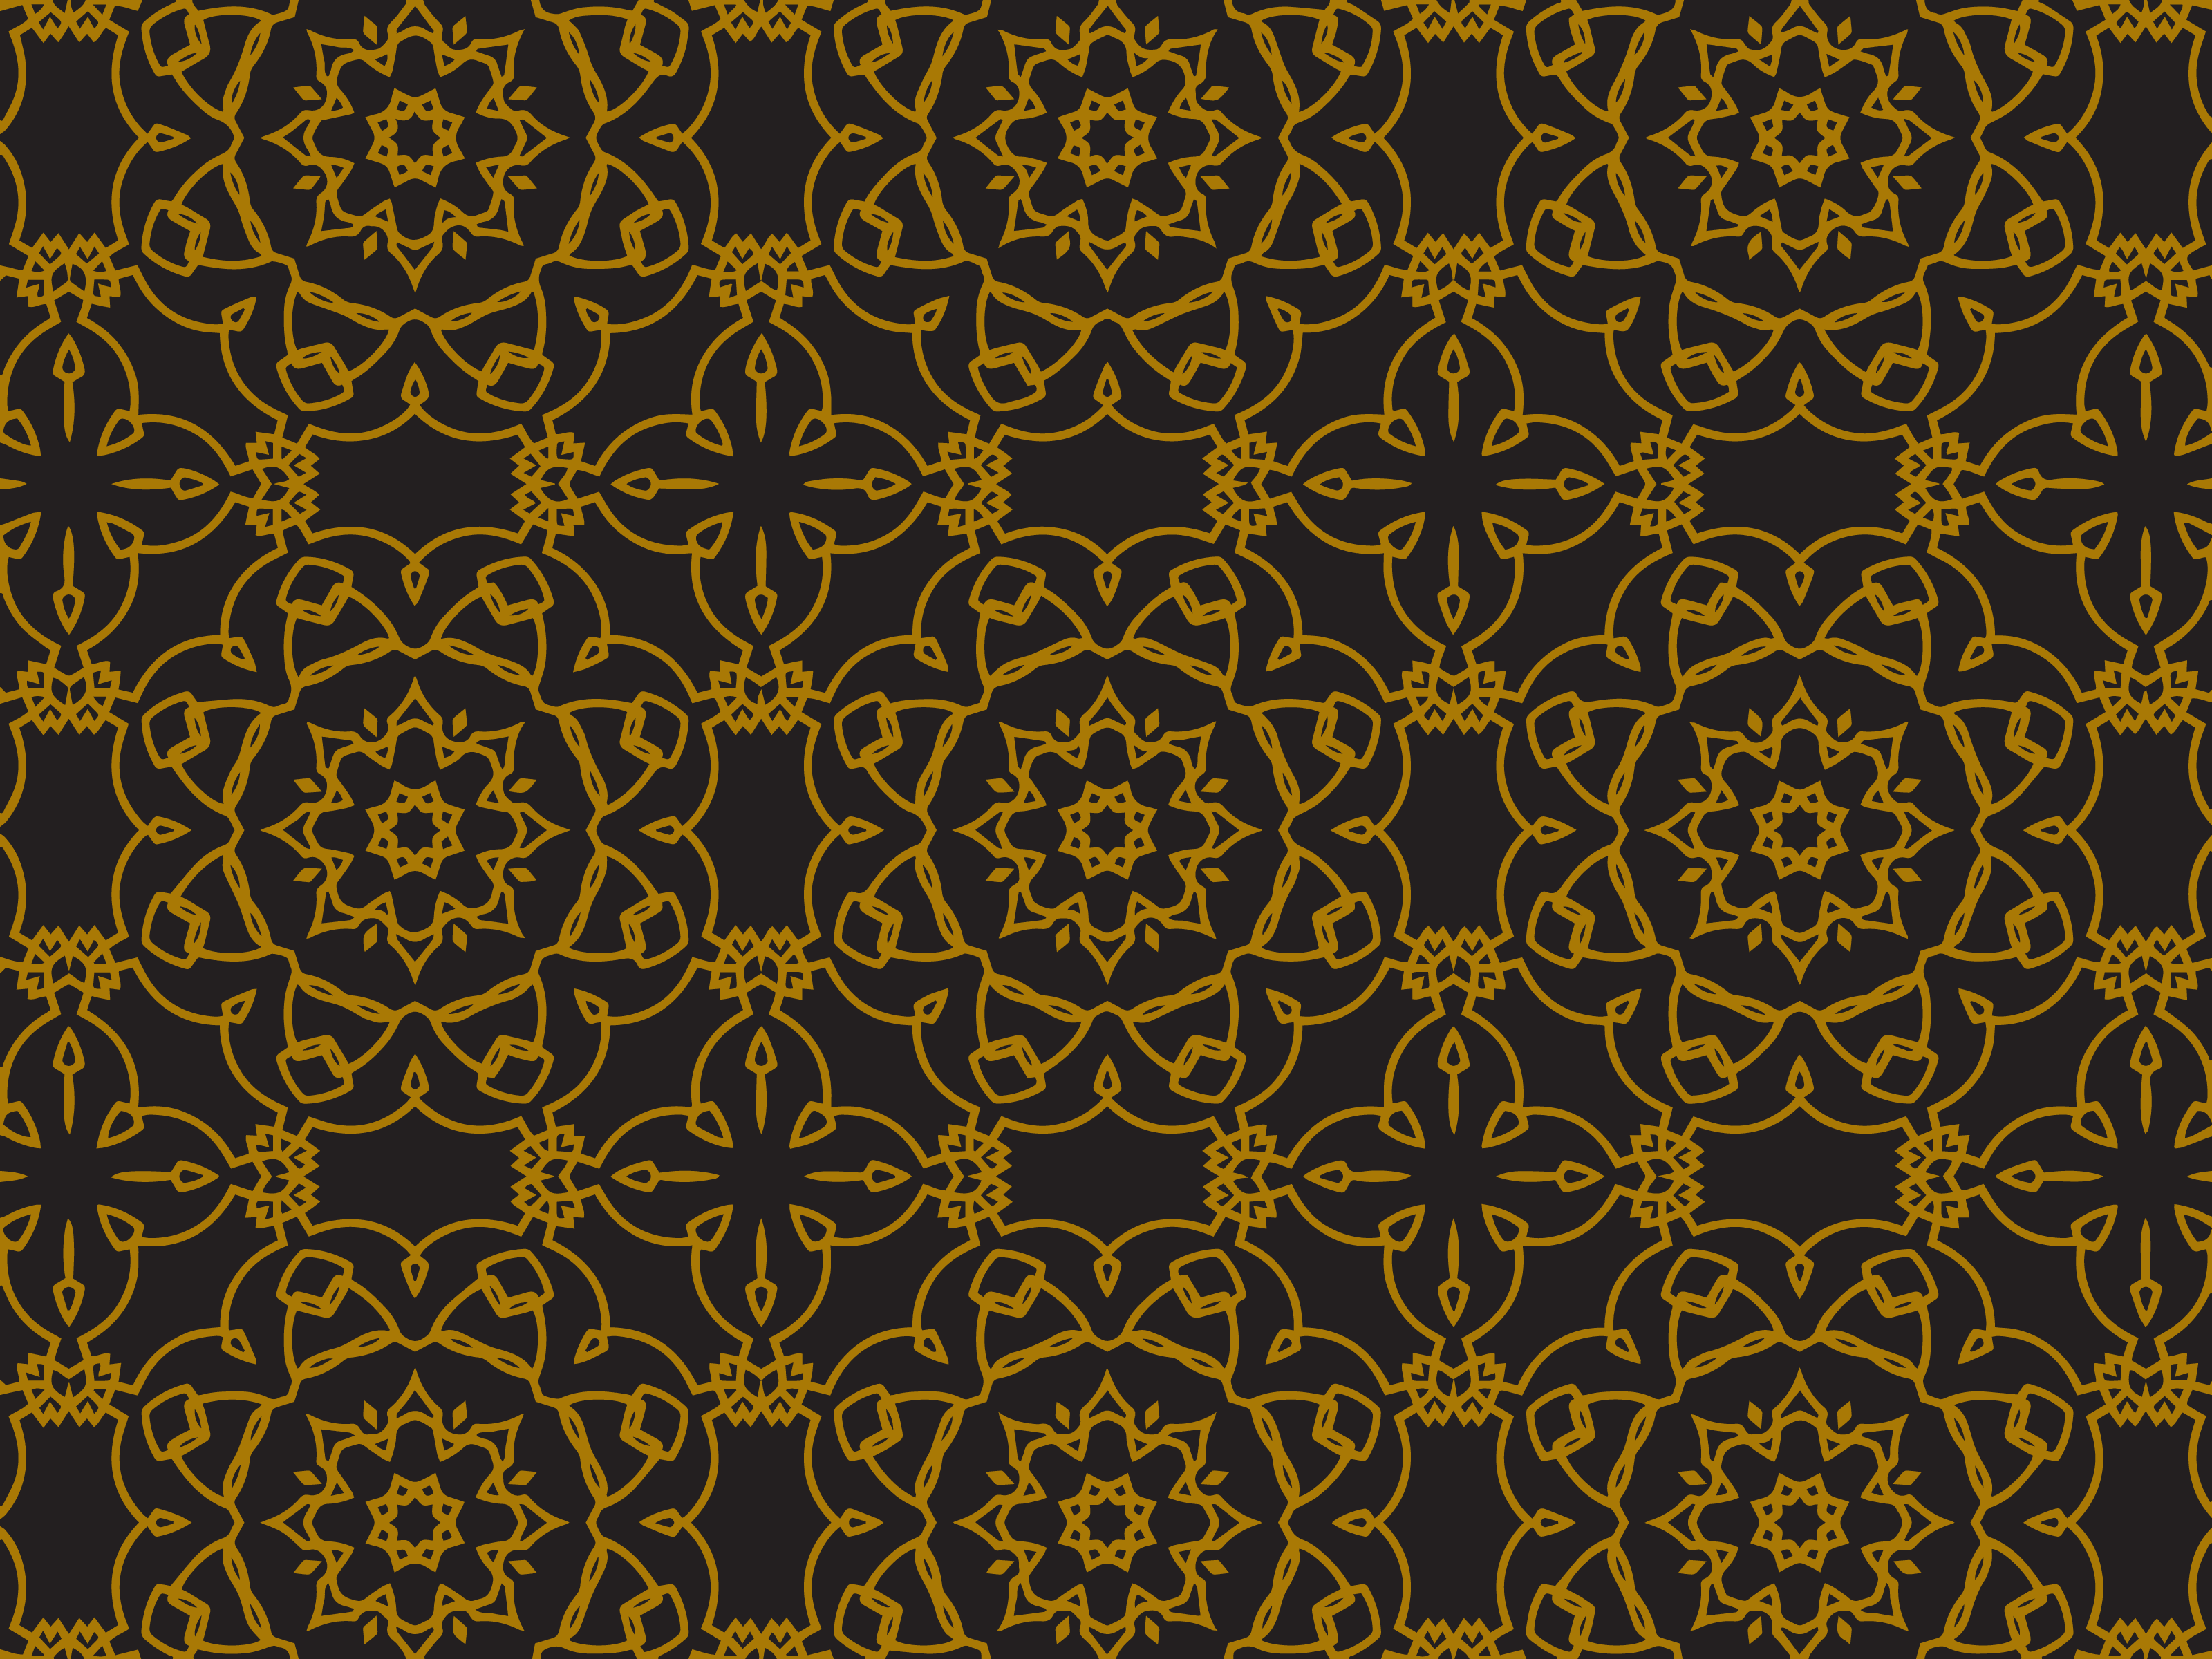 Download Free Pattern Gold Flowering Circle Graphic By Silkymilkycreative for Cricut Explore, Silhouette and other cutting machines.